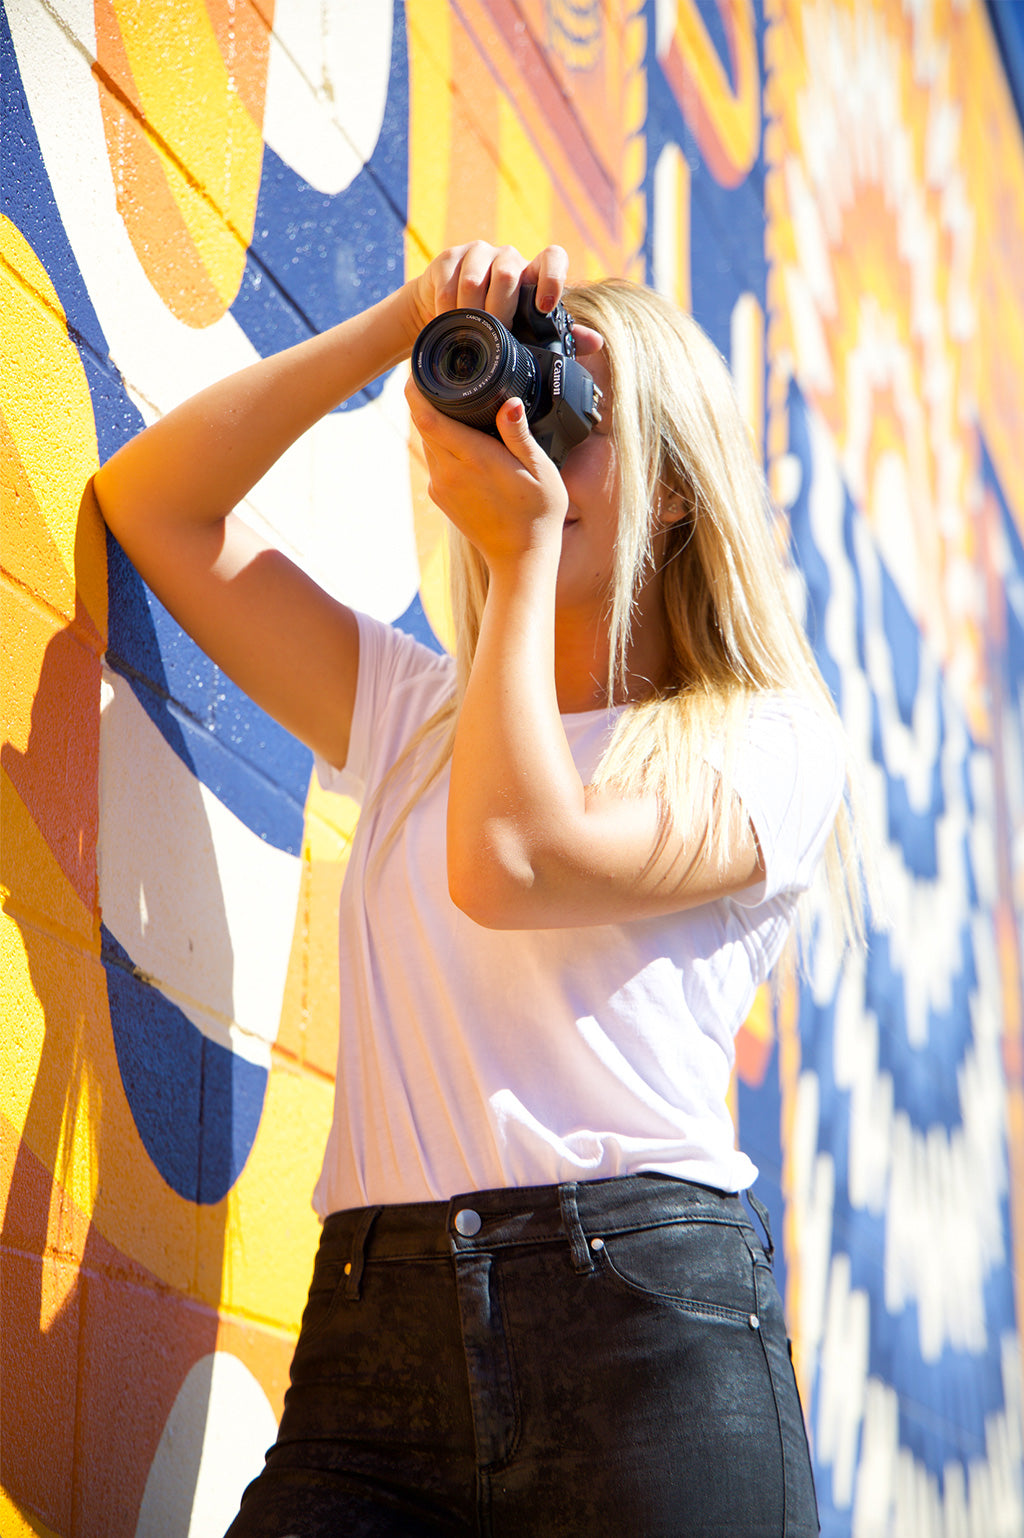 girl using Canon eos rebel SL3 with colorful wall behind her